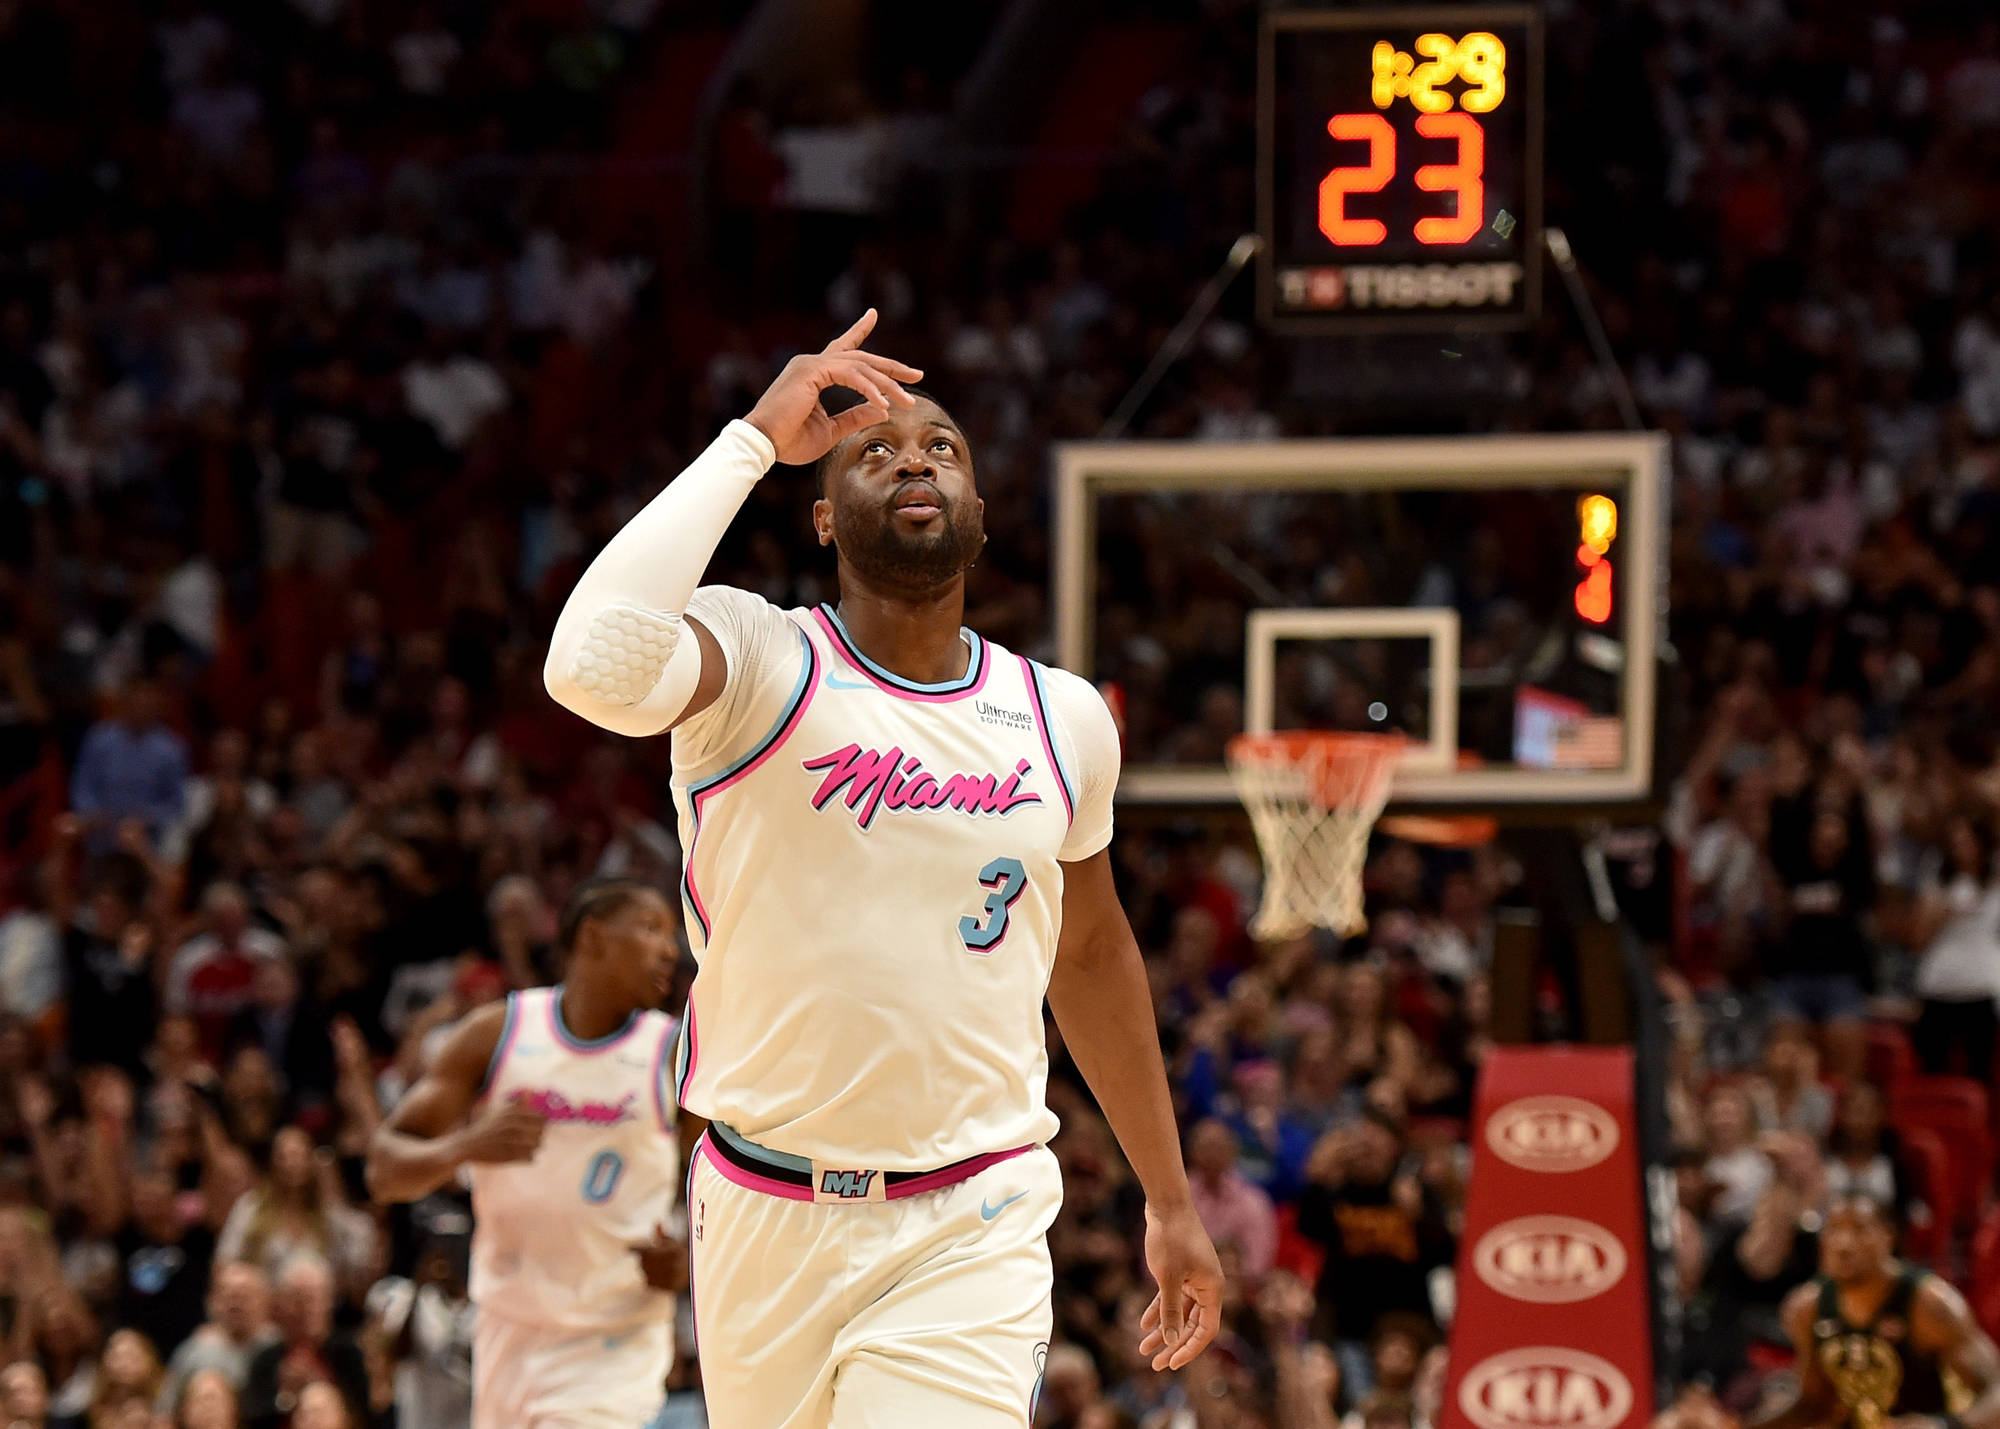 All Star Flip At 9 30 Power Couple Gabrielle Union And Dwyane Wade Redo An Outdated Ranch In Up Ing Miami Neighborhood With The Hopes Of